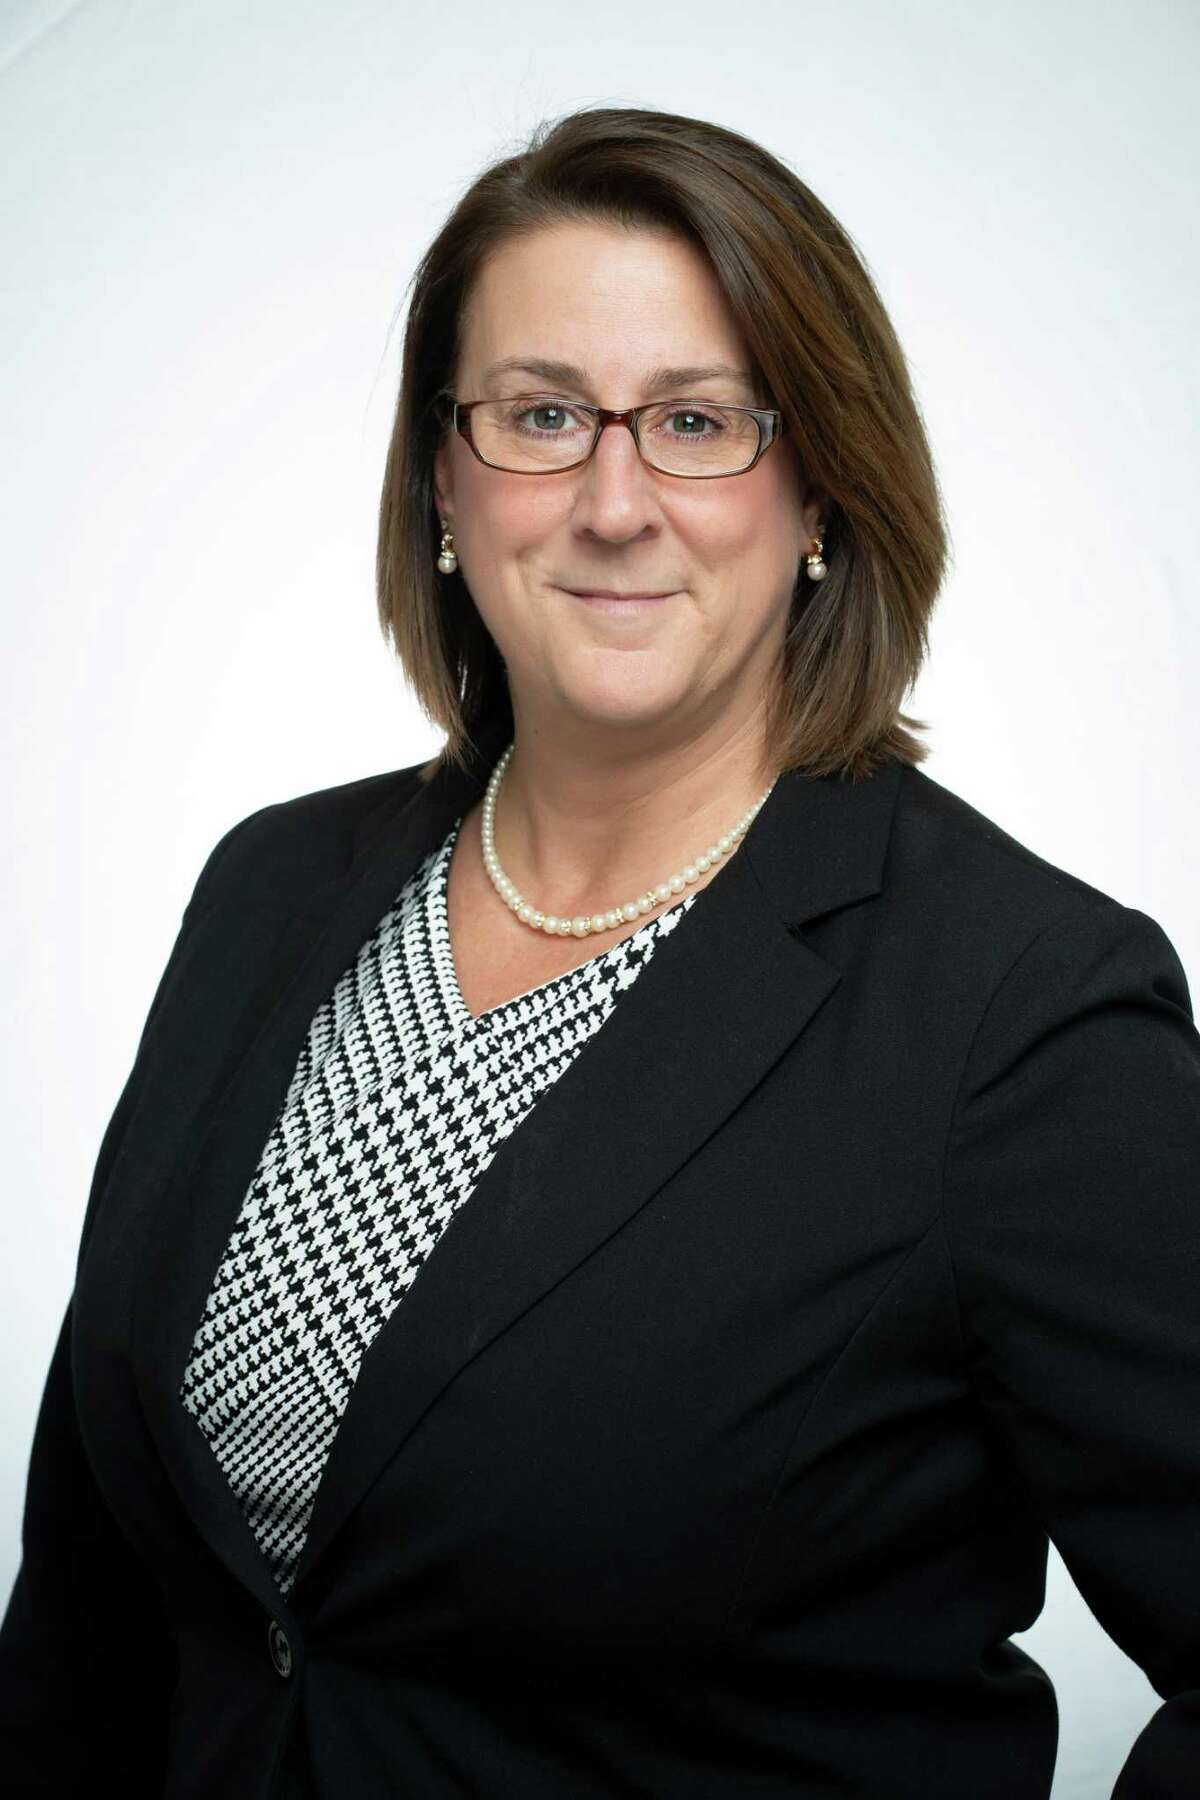 Lesa Vanotti is the new president and CEO of Torrington Savings Bank, the 14th president in the bank's 152-year history.